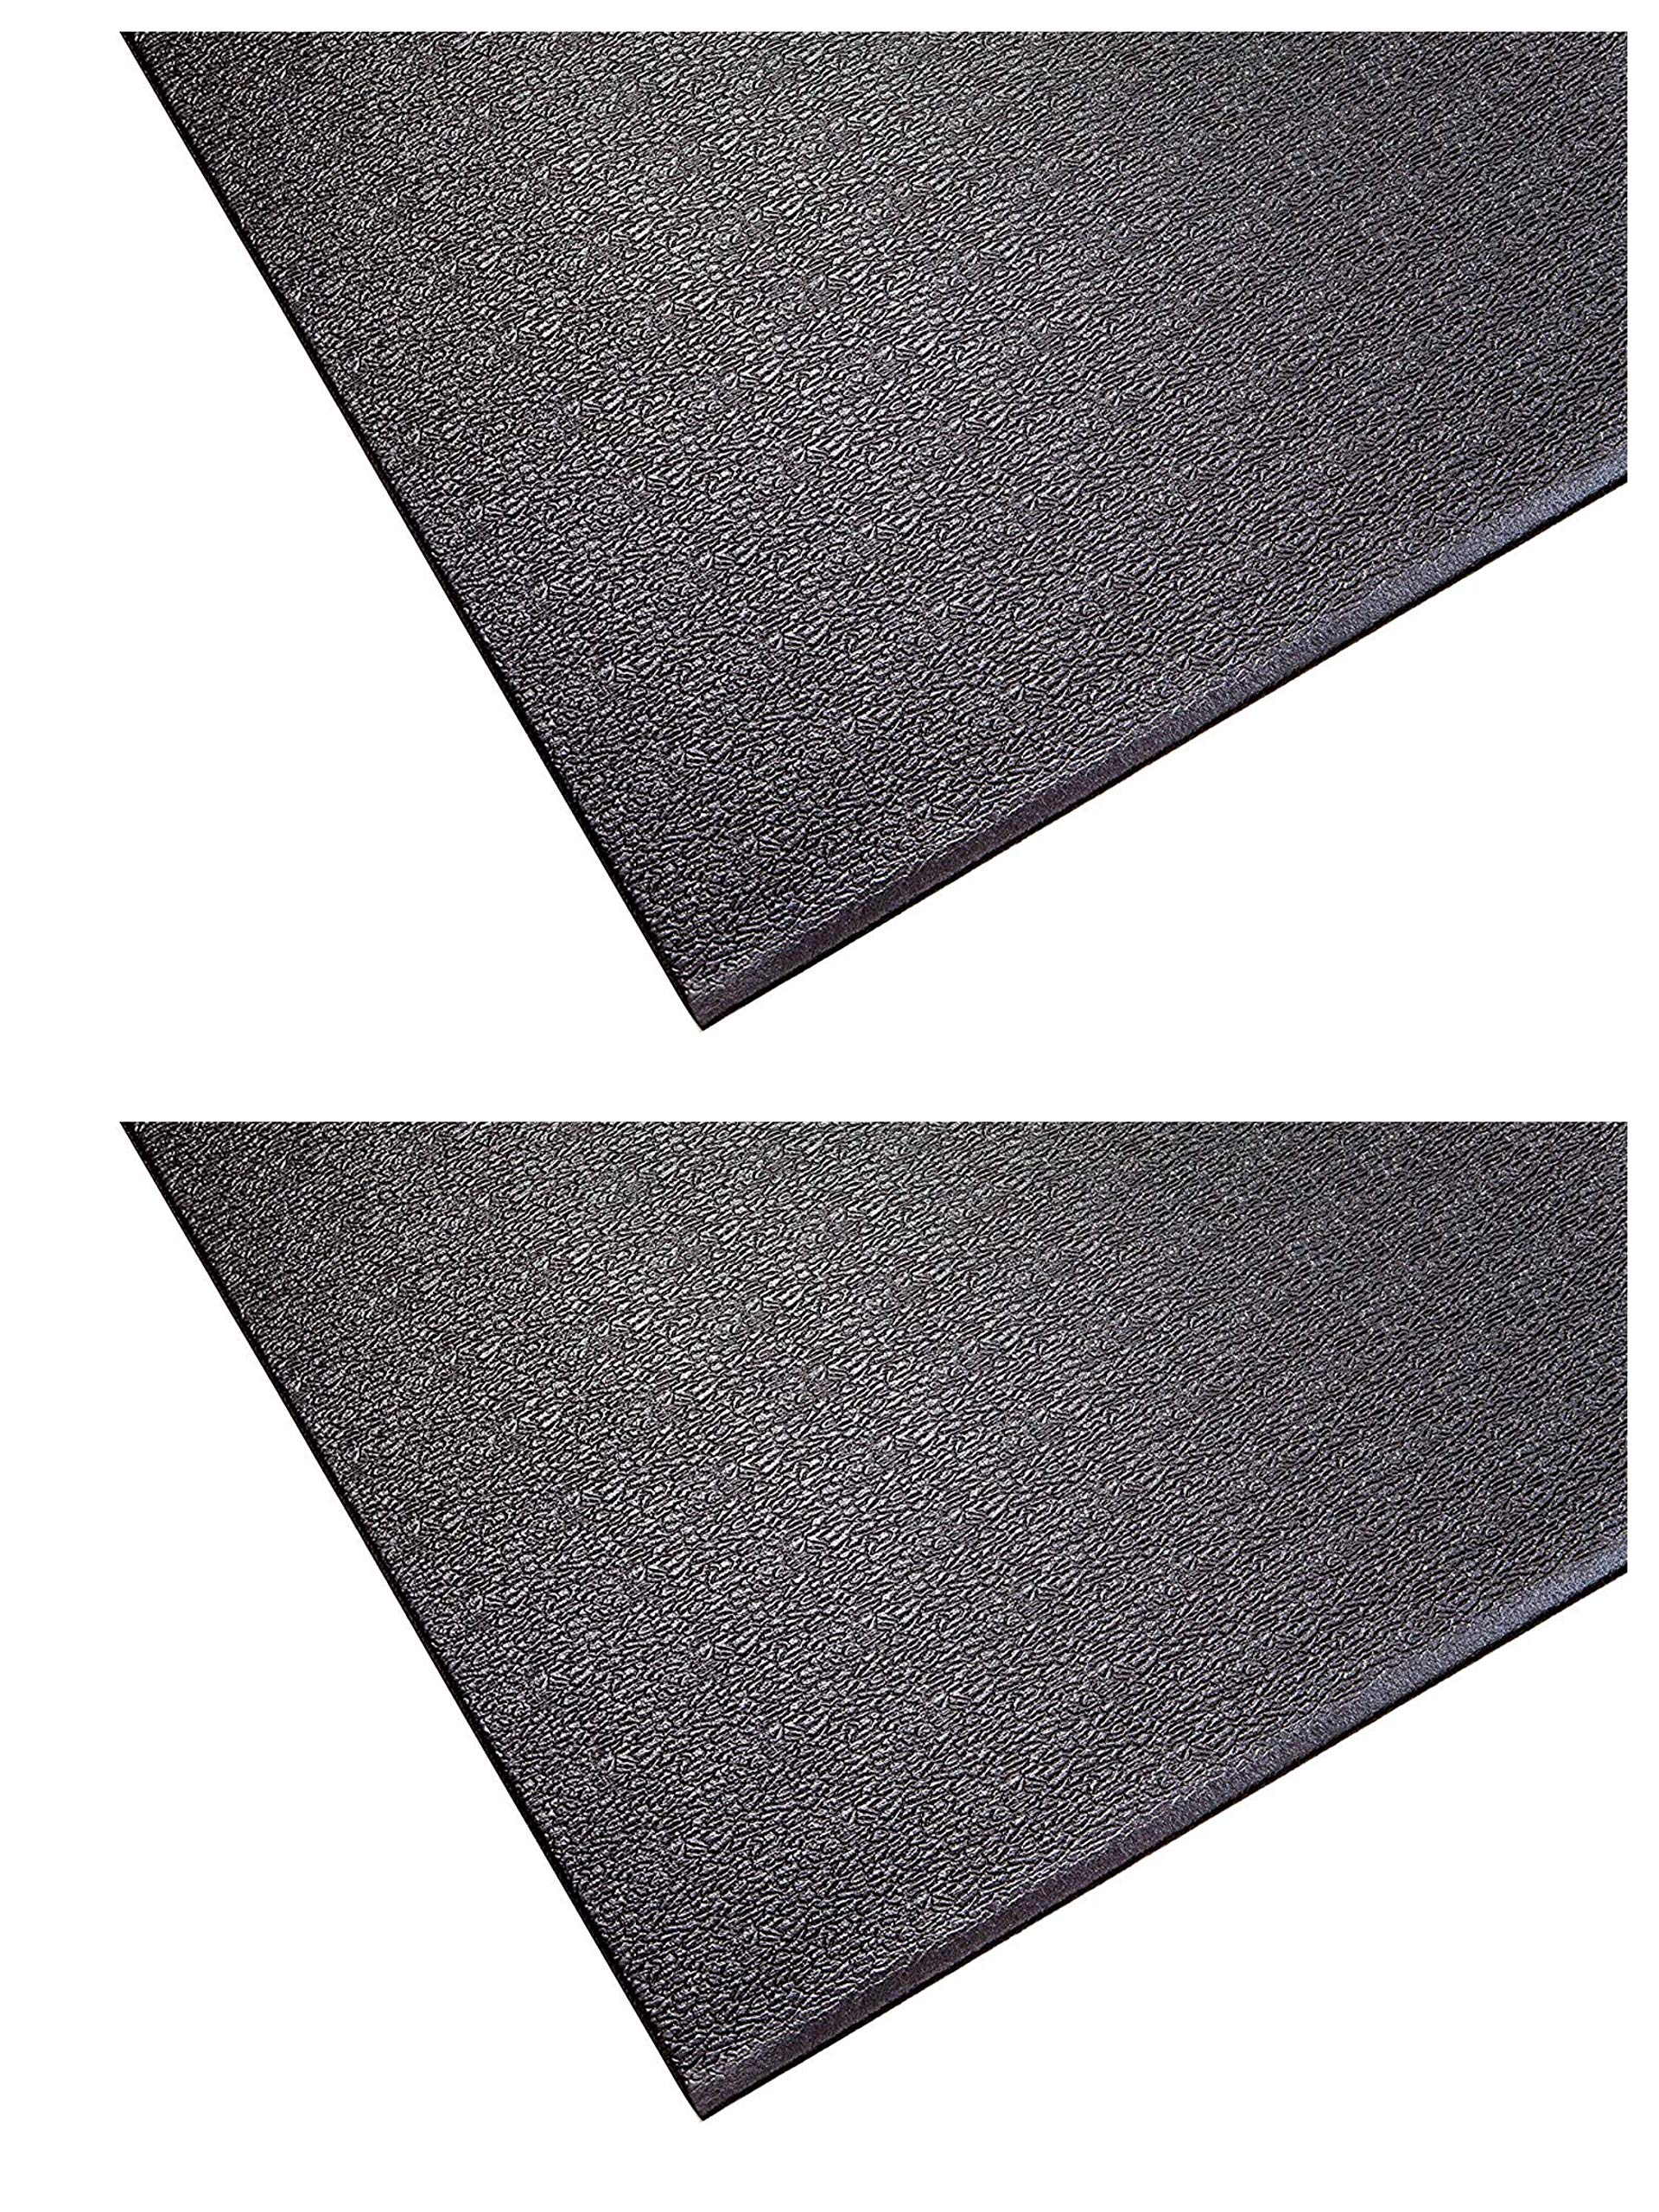 SuperMats Heavy Duty Equipment Mat 20GS Made in U.S.A. for Indoor Cycles Exercise Upright Bikes and Steppers (2 Feet x 3 Feet 10 in) (24-Inch x 46-Inch) (60.96 cm x 116.84 cm) (Тwо Расk)